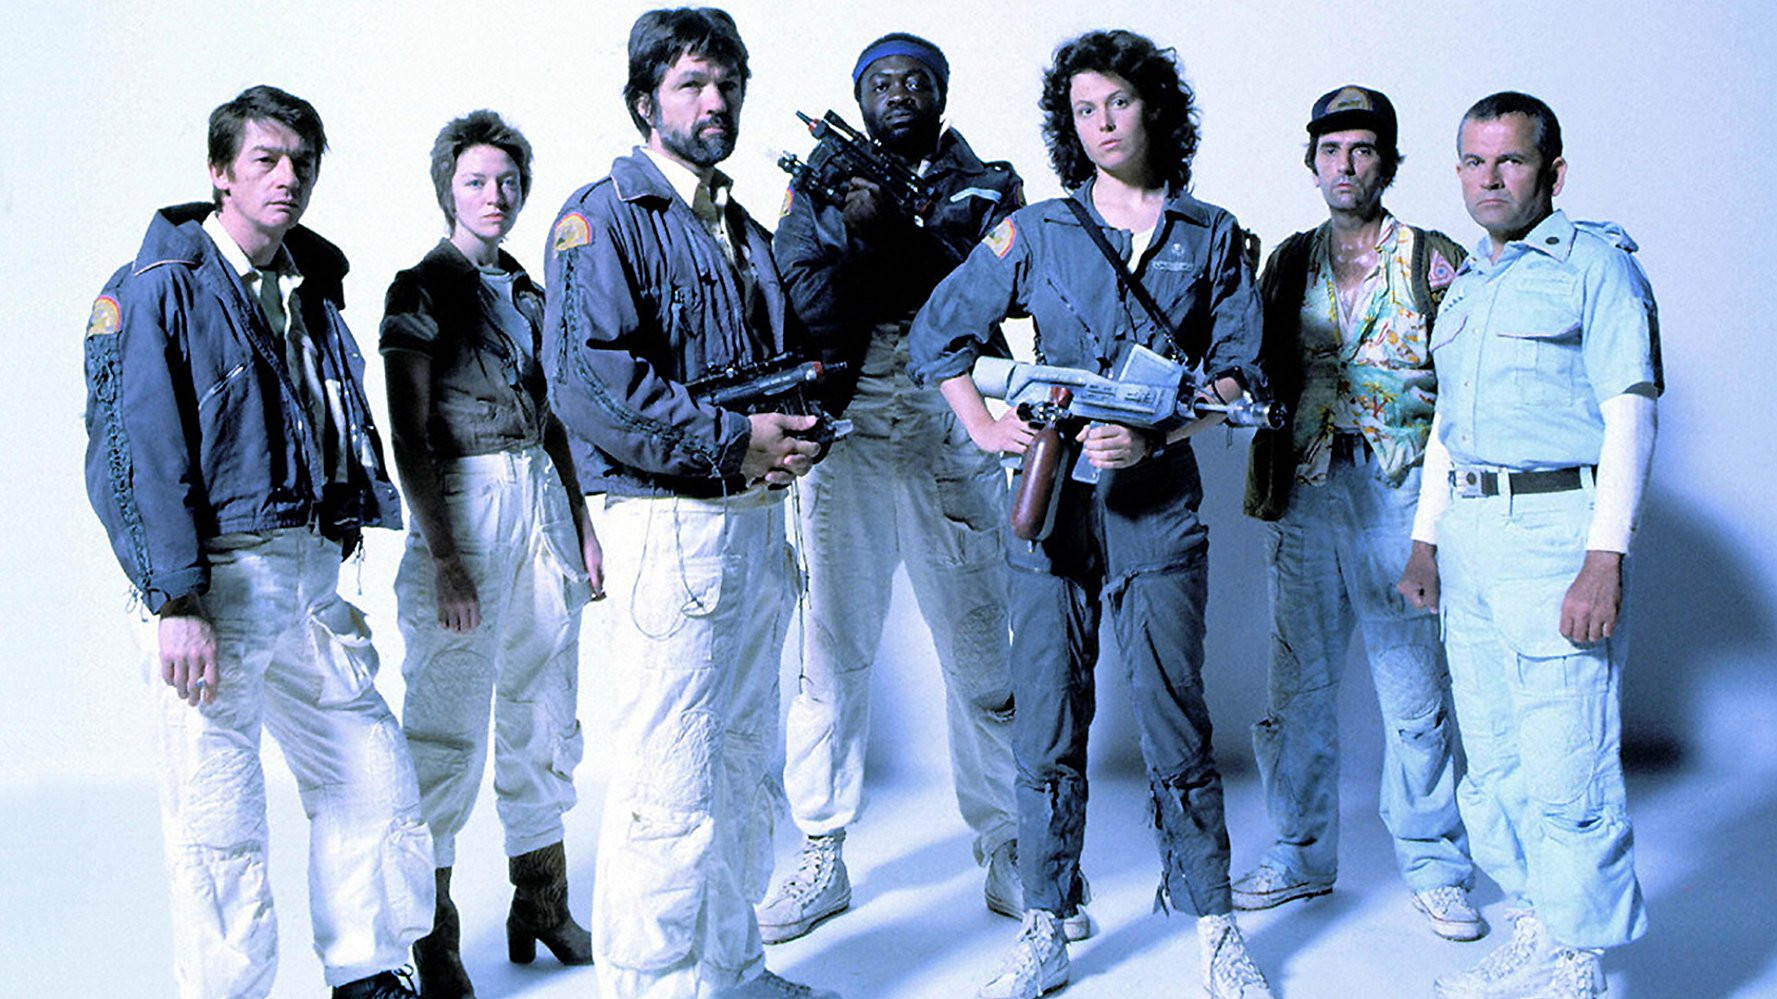 John Hurt, Veronica Cartwright, Tom Skerritt, Yaphet Kotto, Sigourney Weaver, Harry Dean Stanton, Ian Holm in Alien (1979)